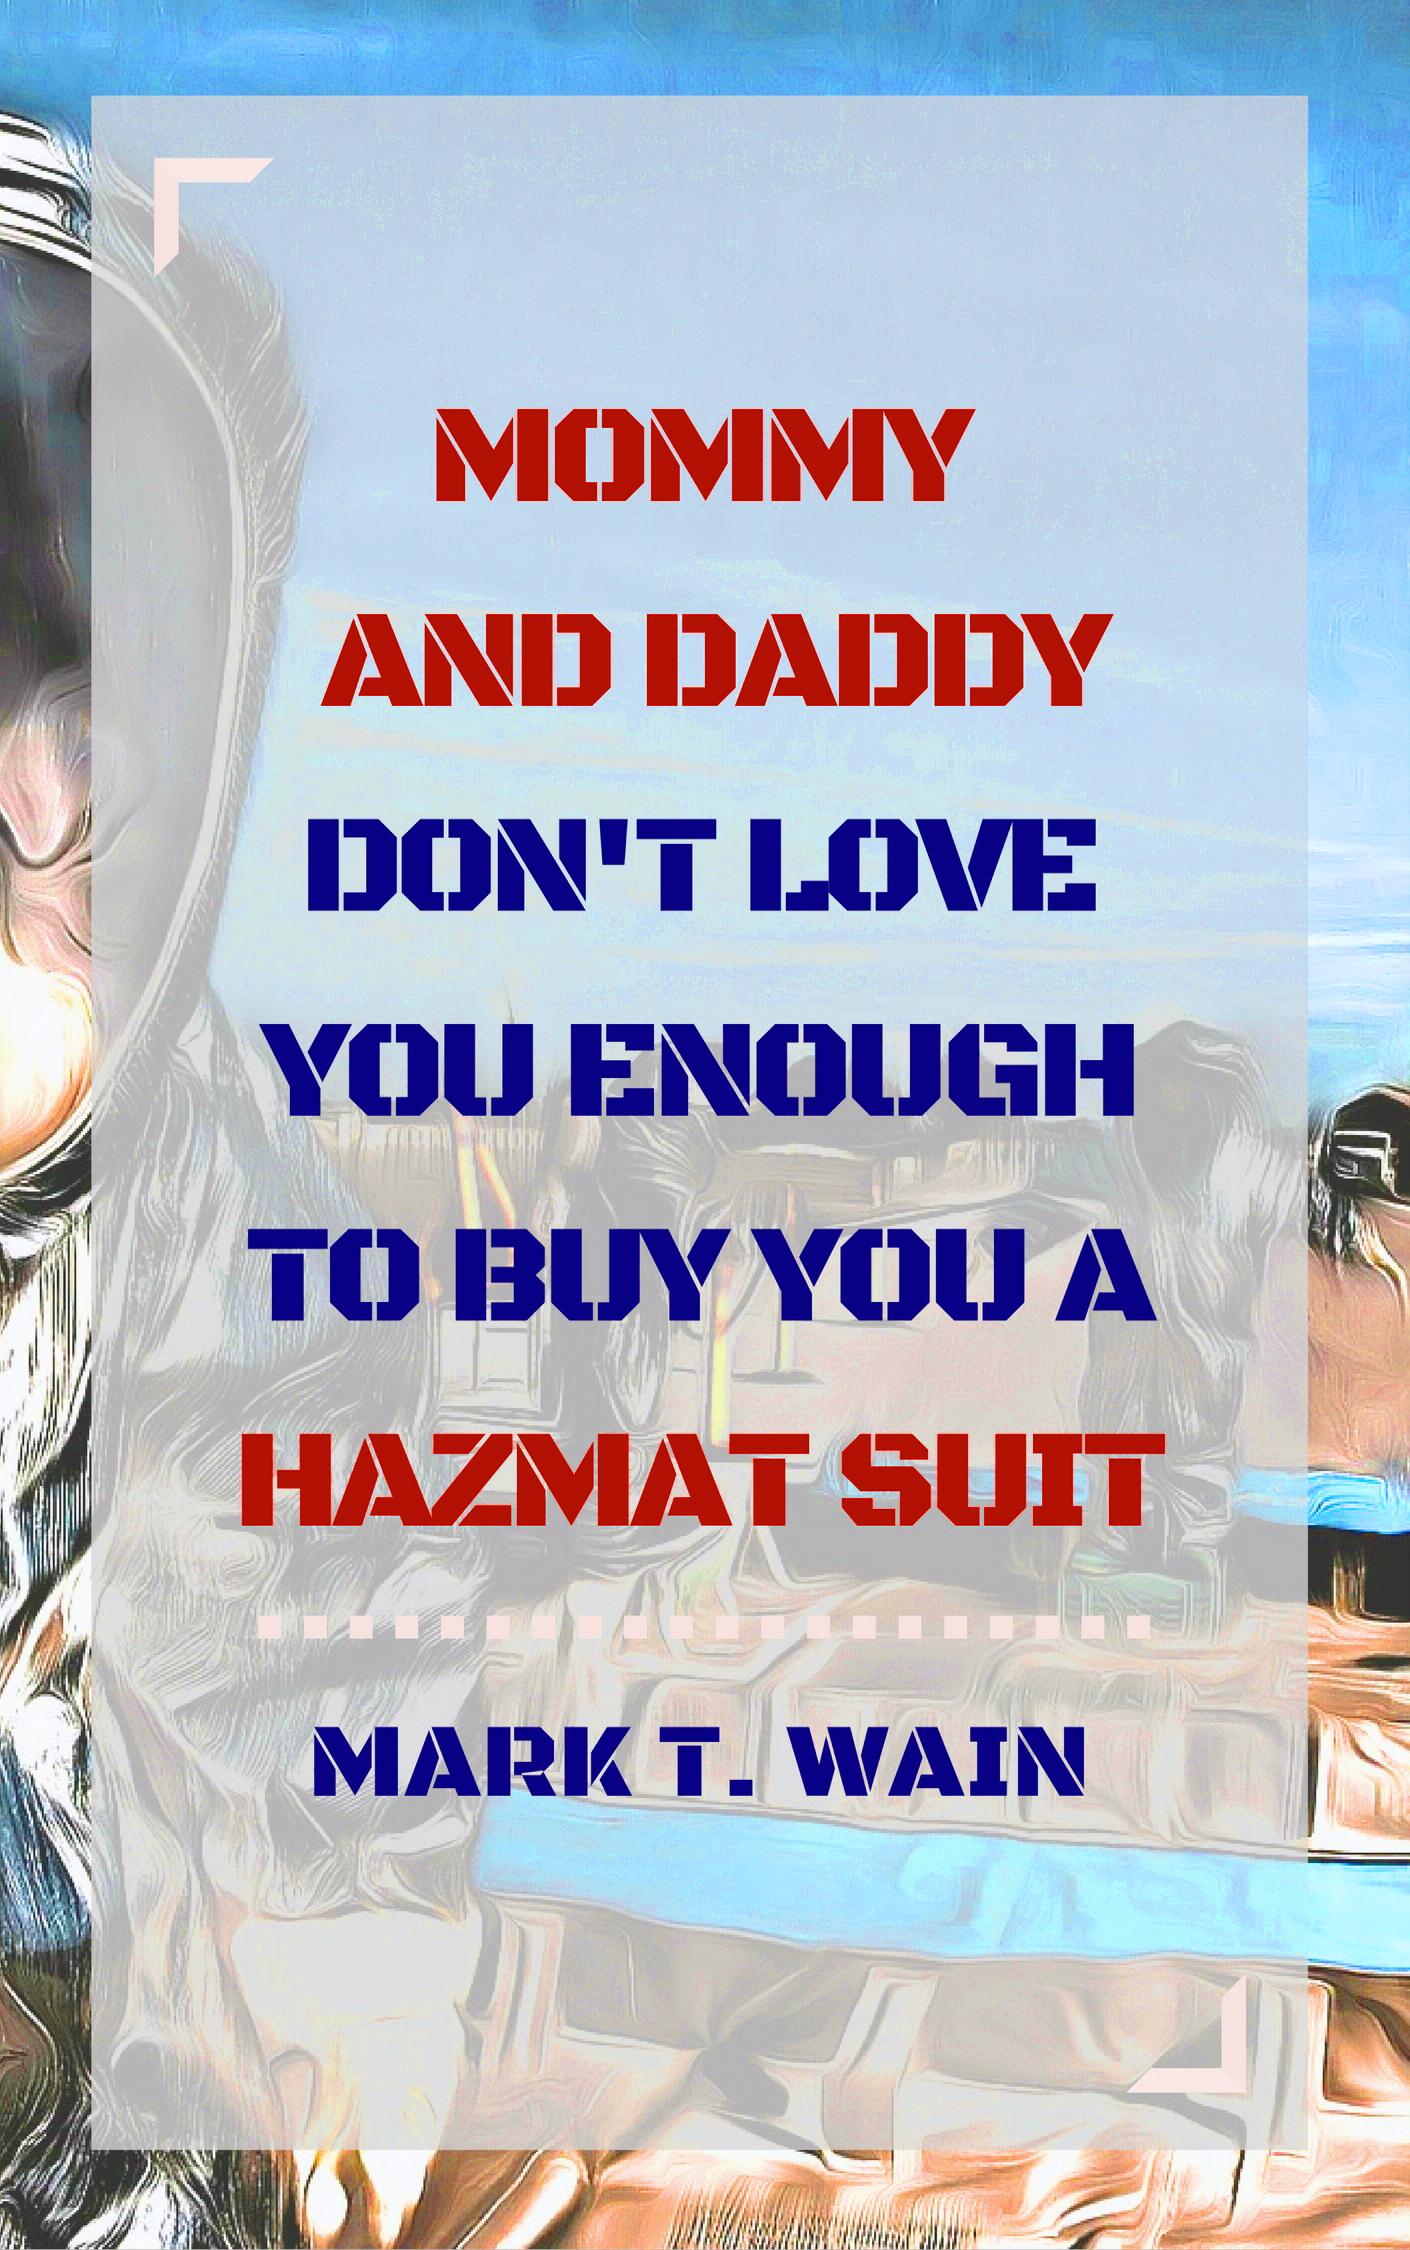 Read this book by Mark T. Wain!